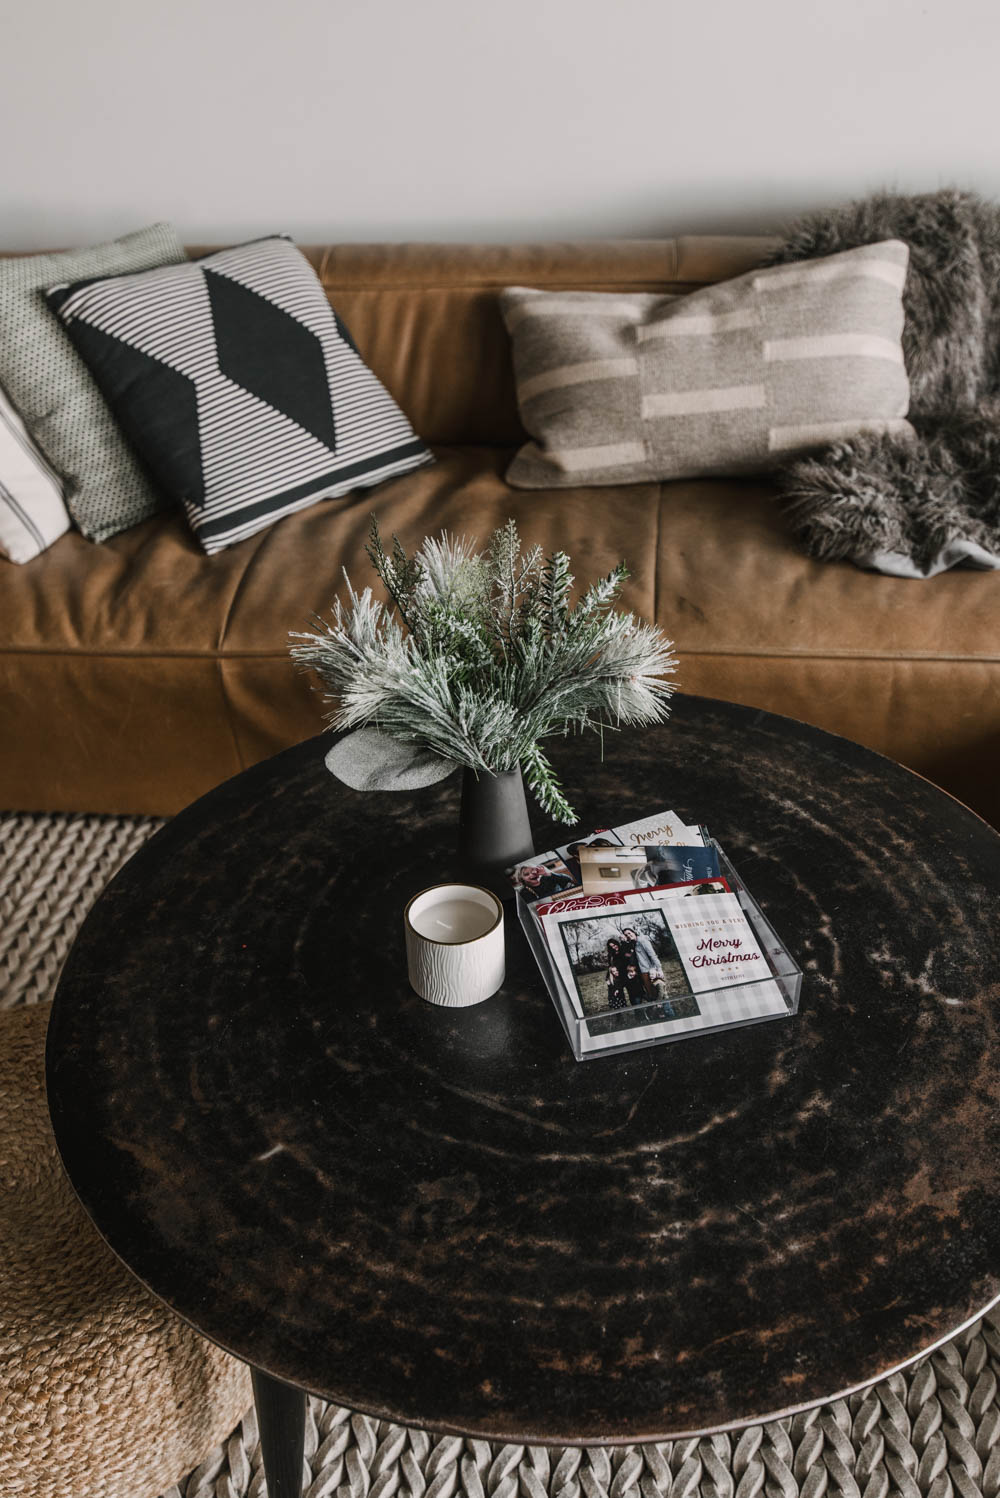 photo holiday cards in basket on coffee table